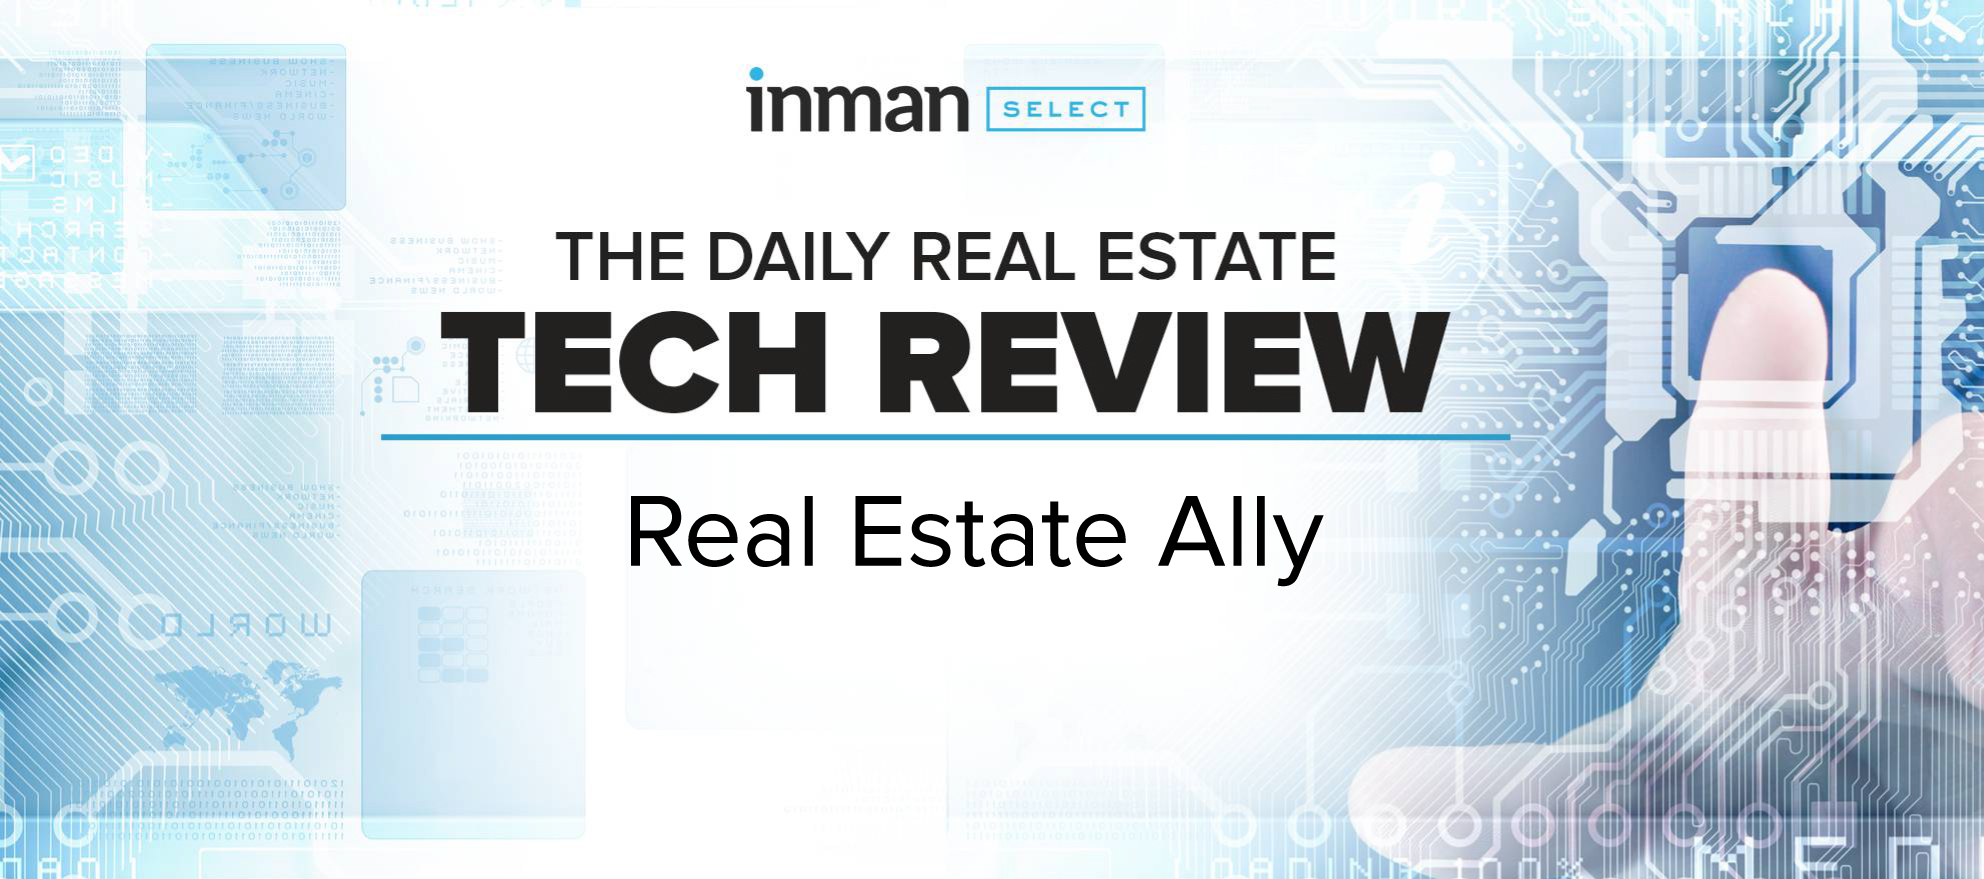 Real Estate Ally is an easy, smart way to manage revenue goals